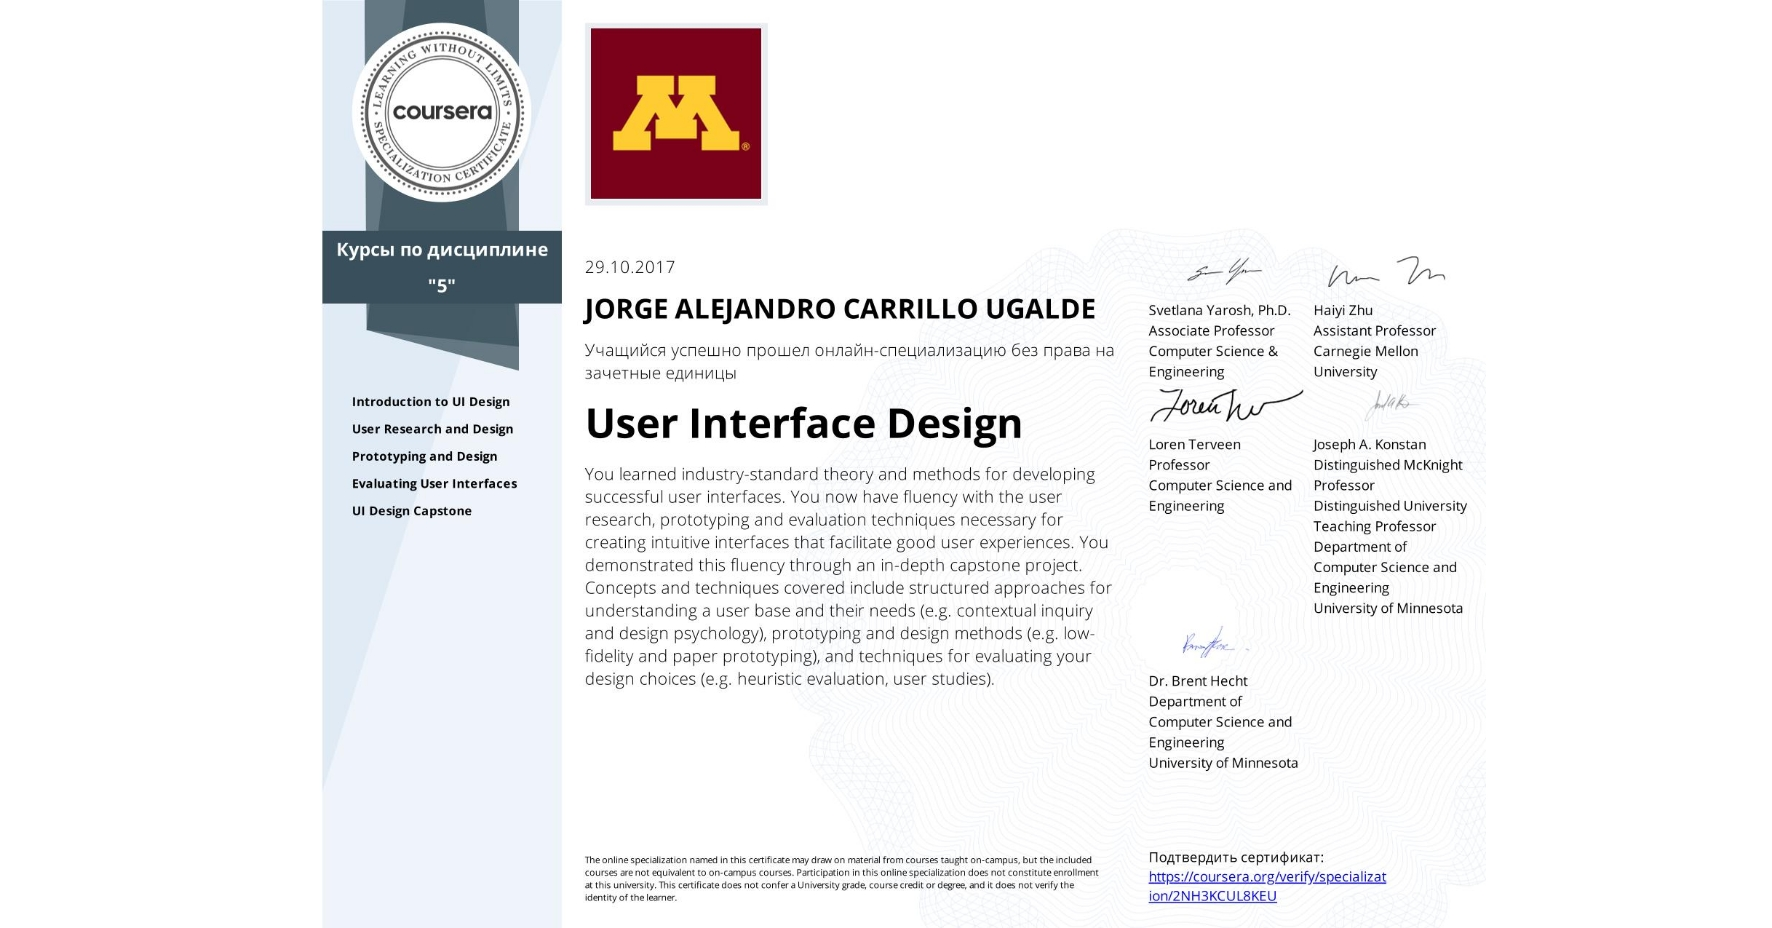 View certificate for Jorge Carrillo, User Interface Design, offered through Coursera. You learned industry-standard theory and methods for developing successful user interfaces. You now have fluency with the user research, prototyping and evaluation techniques necessary for creating intuitive interfaces that facilitate good user experiences. You demonstrated this fluency through an in-depth capstone project.  Concepts and techniques covered include structured approaches for understanding a user base and their needs (e.g. contextual inquiry and design psychology), prototyping and design methods (e.g. low-fidelity and paper prototyping), and techniques for evaluating your design choices (e.g. heuristic evaluation, user studies).